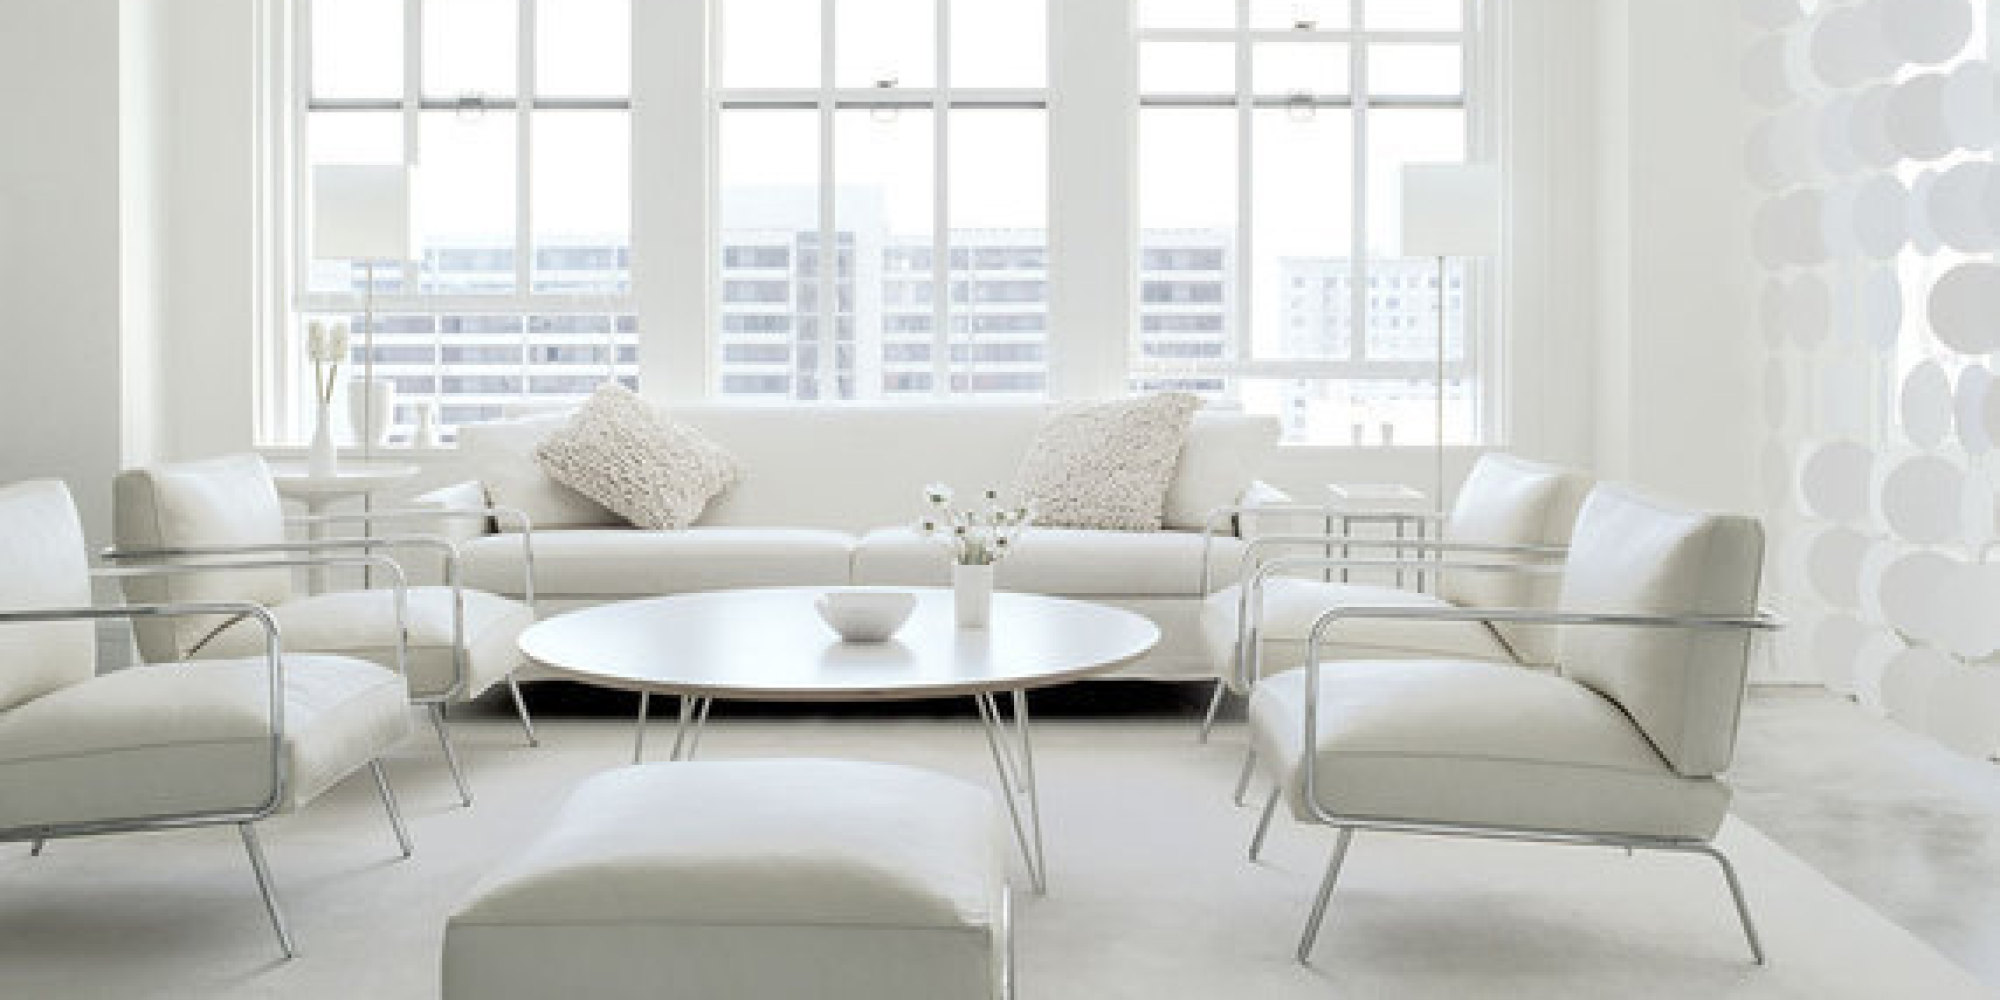 7 All White Interiors That Deliver A Fresh Look